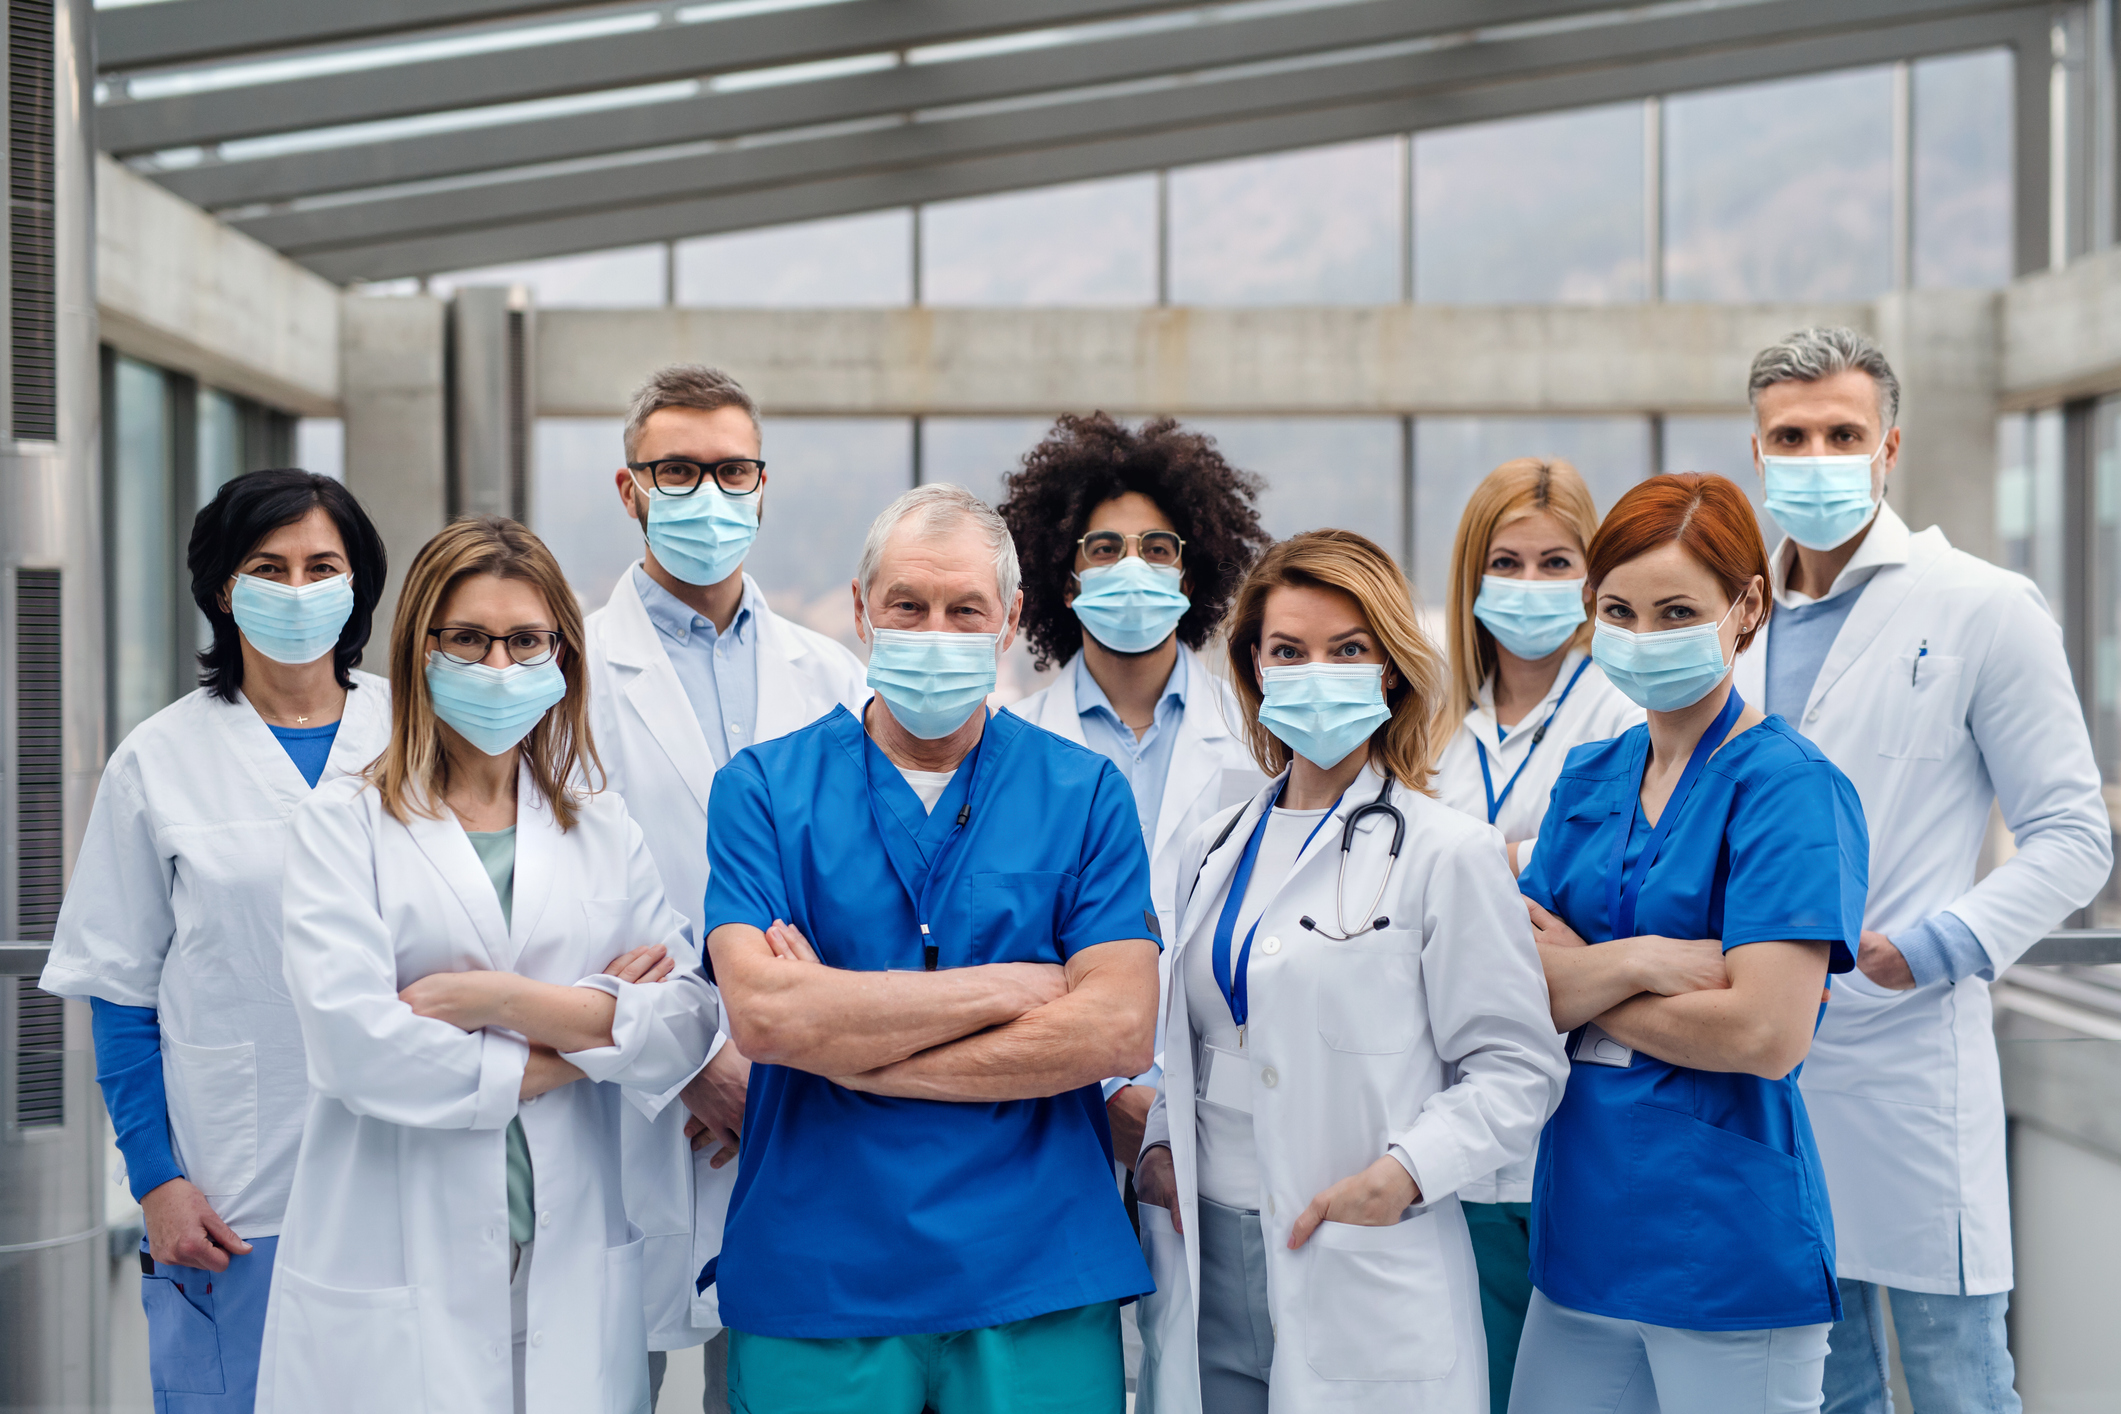 A group of doctors with face masks looking at camera, corona virus concept.